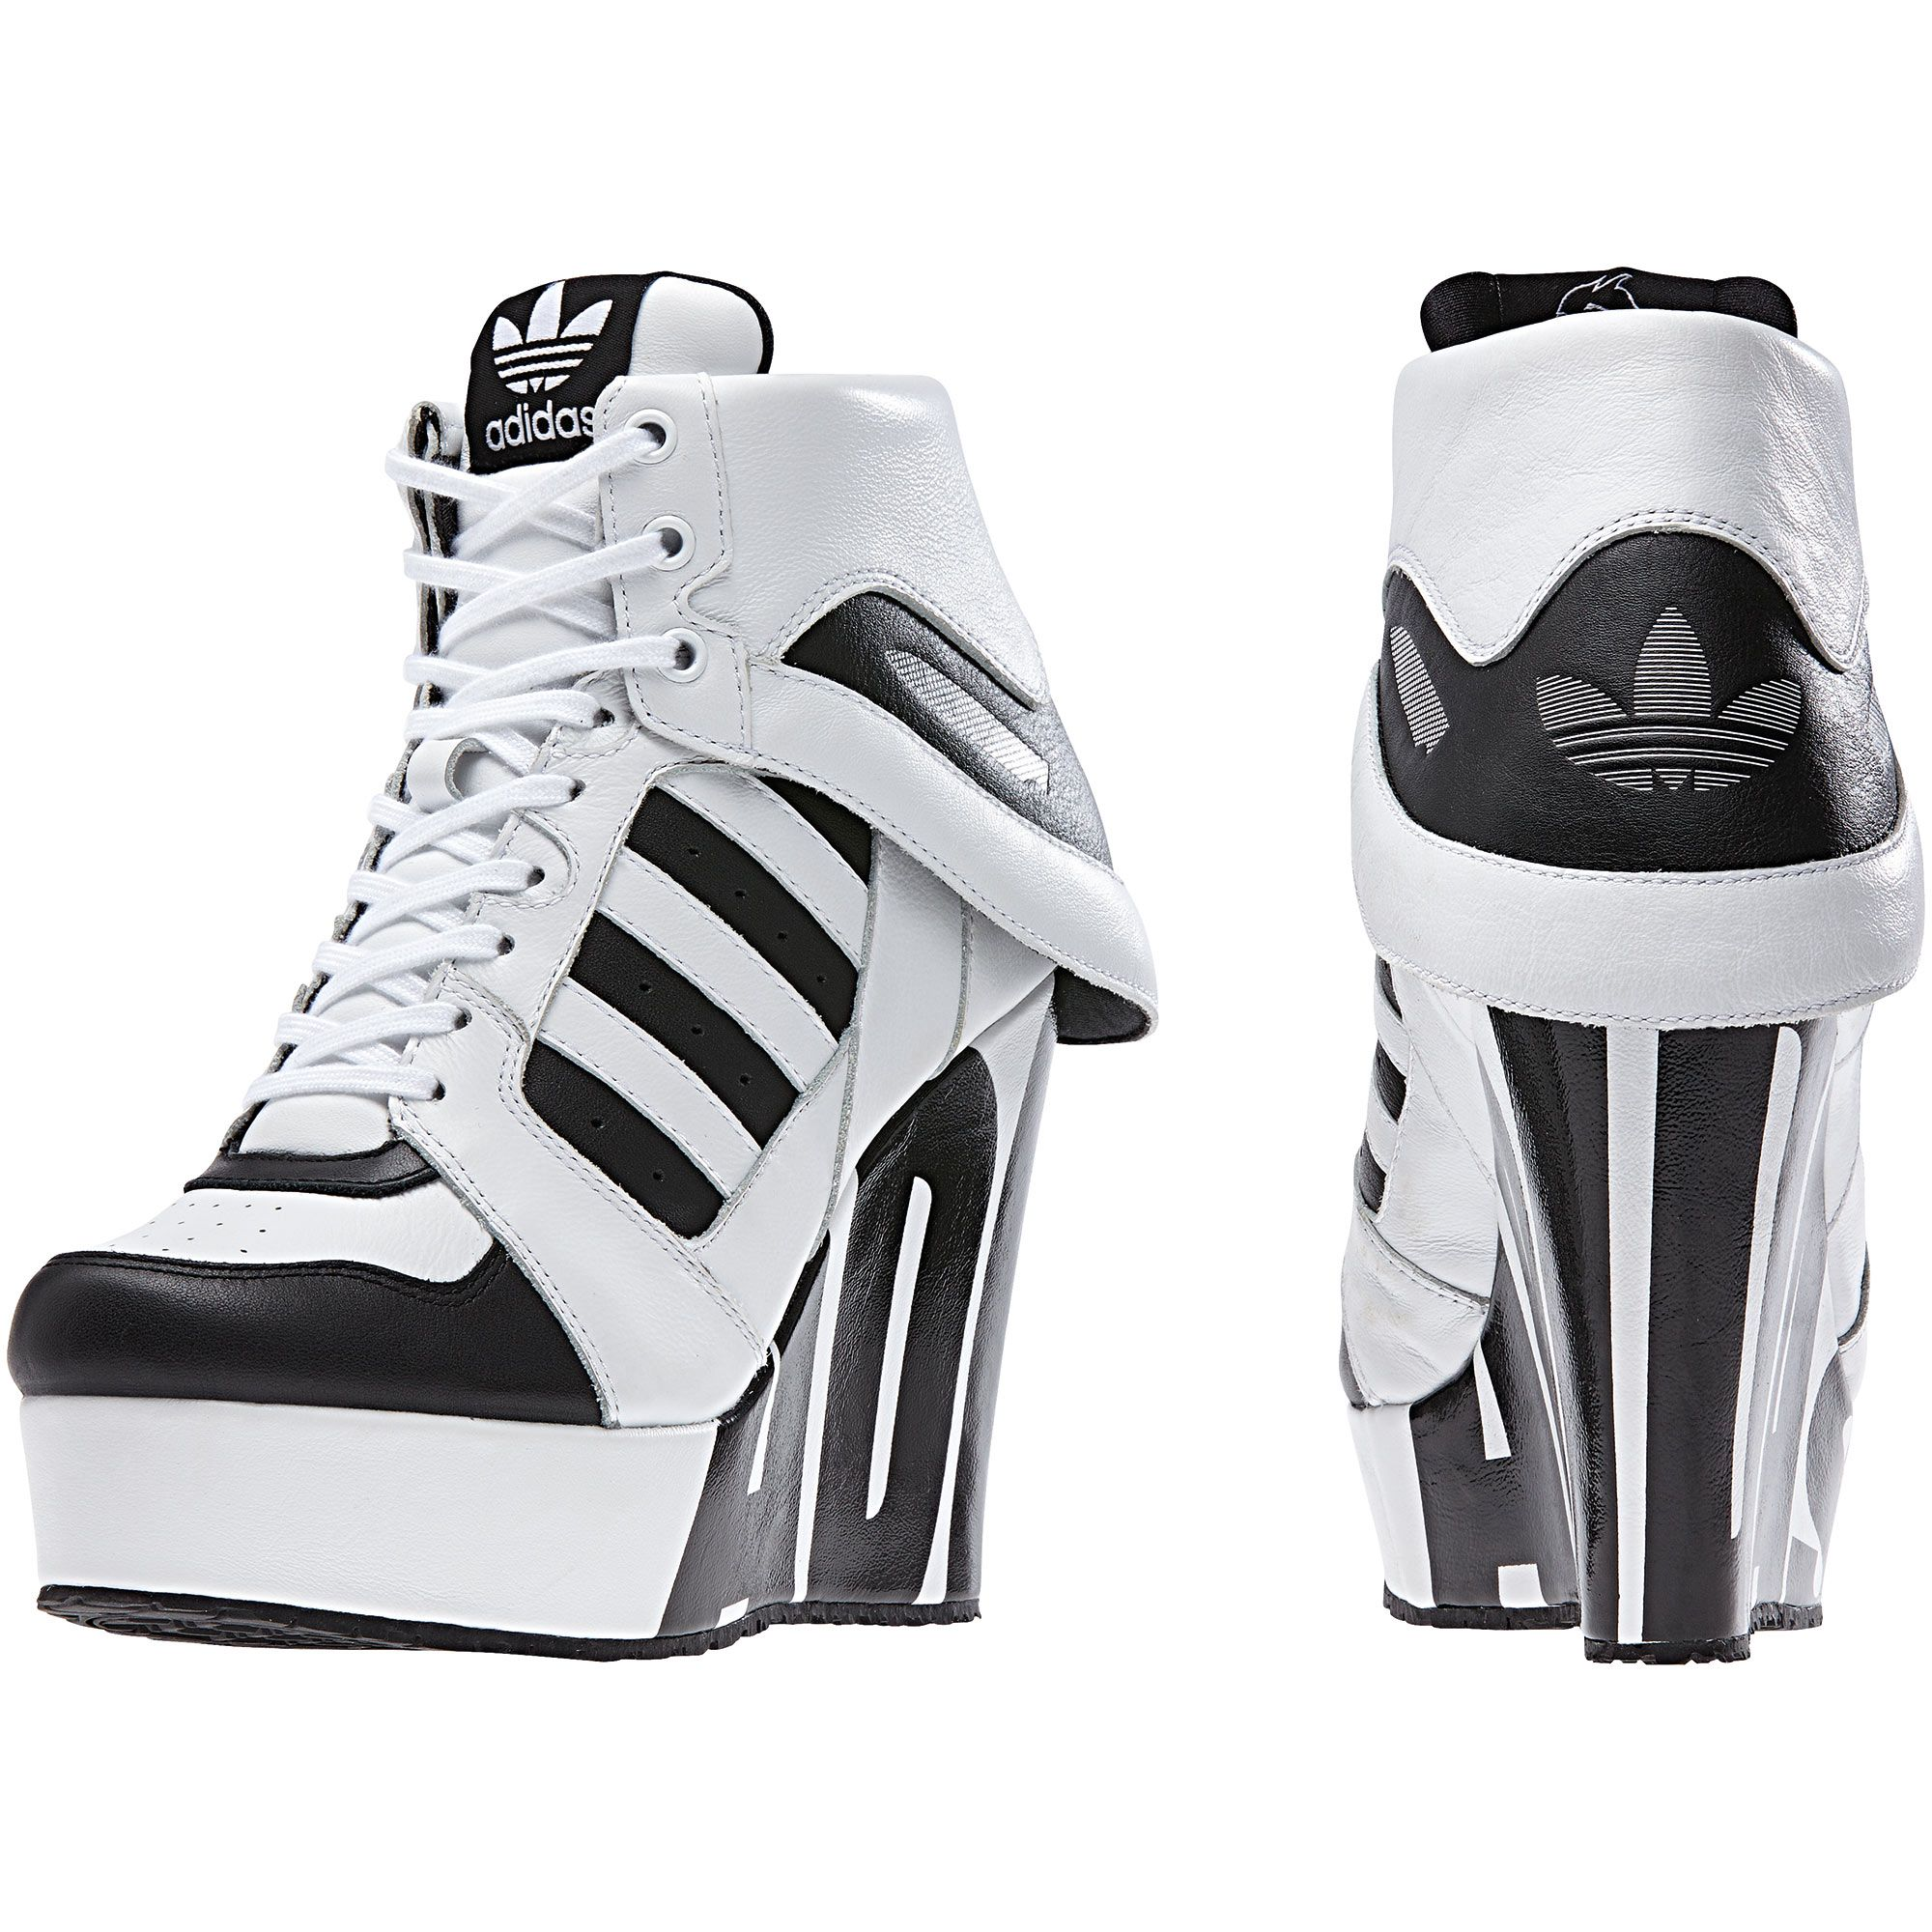 timeless design 955f1 42fa4 Jeremy Scott's modern update to the adidas Streetball shoe, they get a wedge  heel for a strong statement and fold-over collar for ...